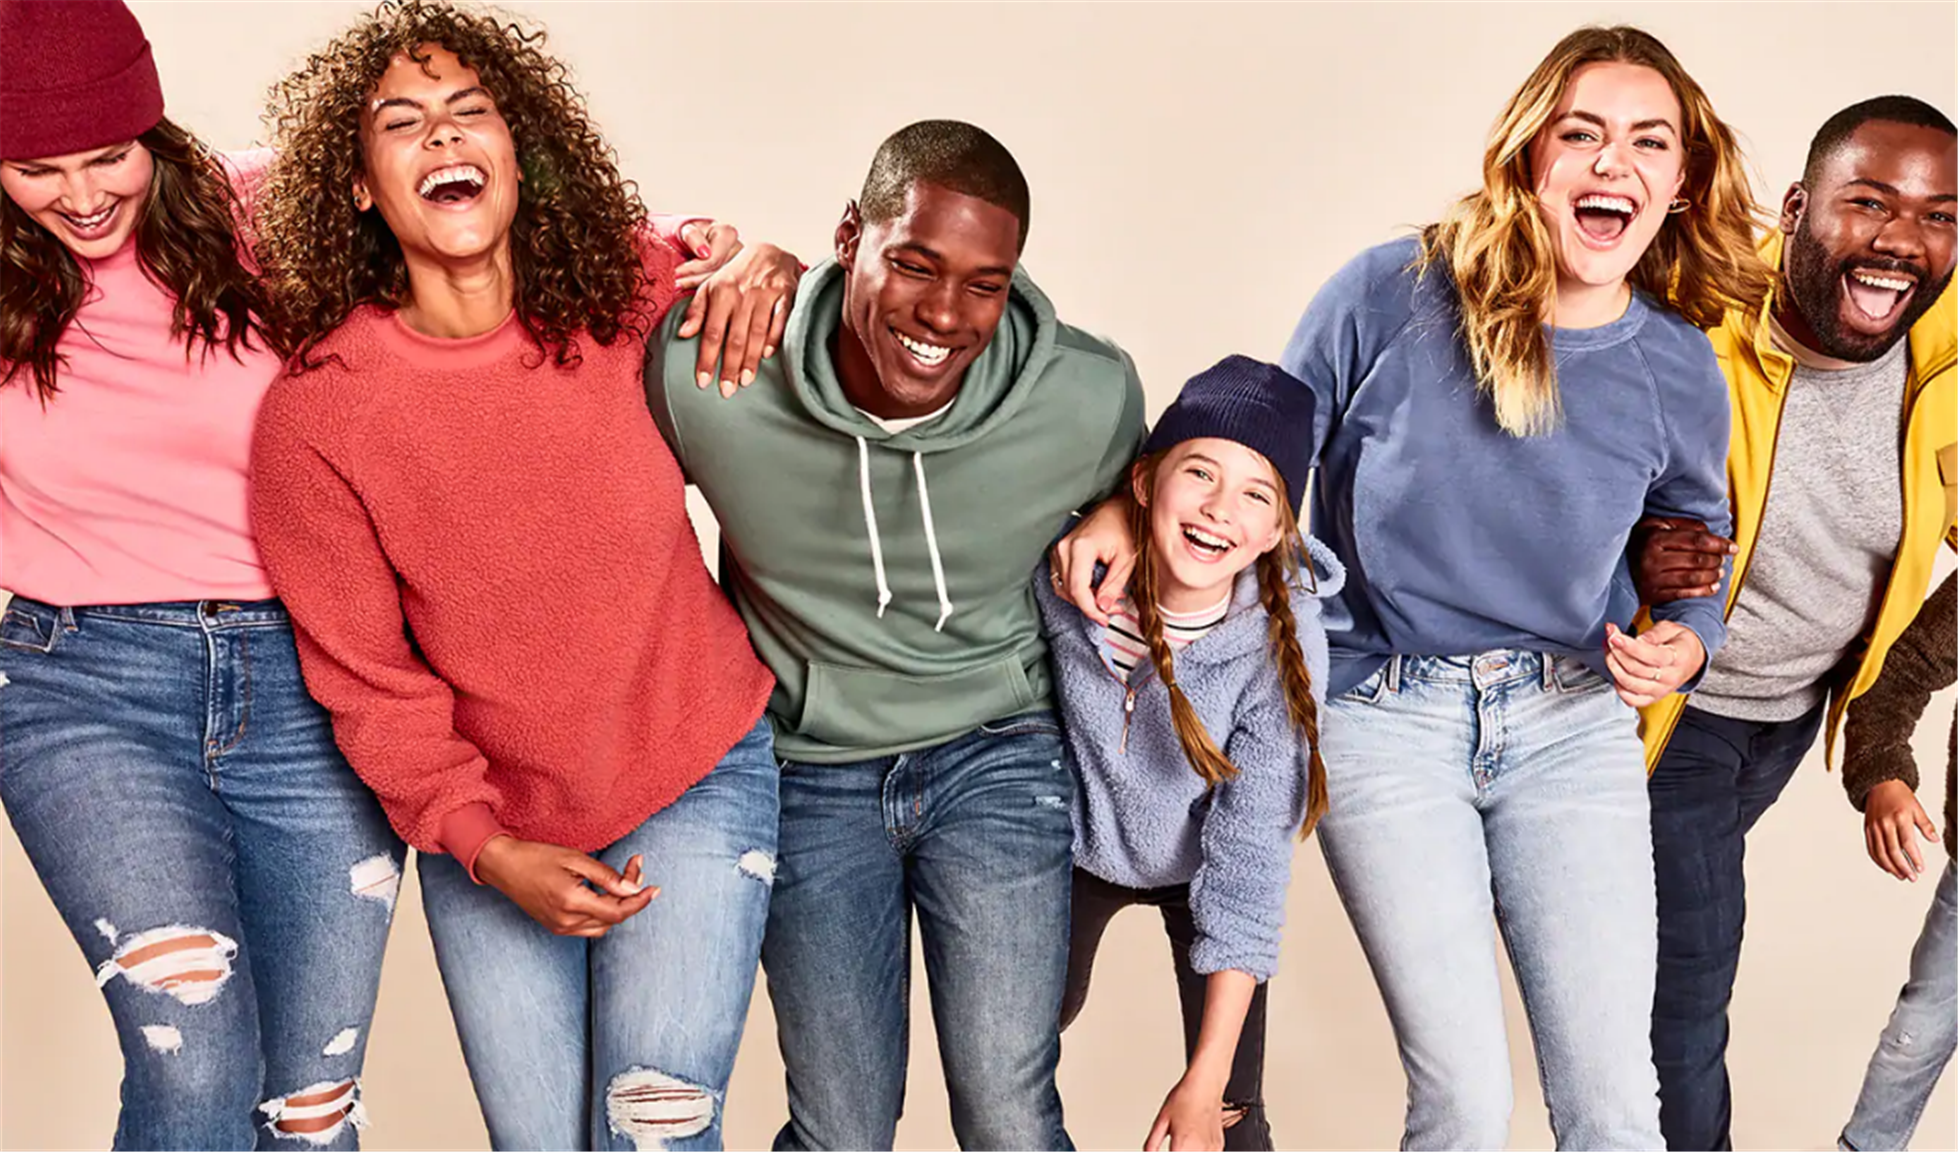 Gap Factory – Take an Additional 40% Off Clearance Jeans + Free Shipping!